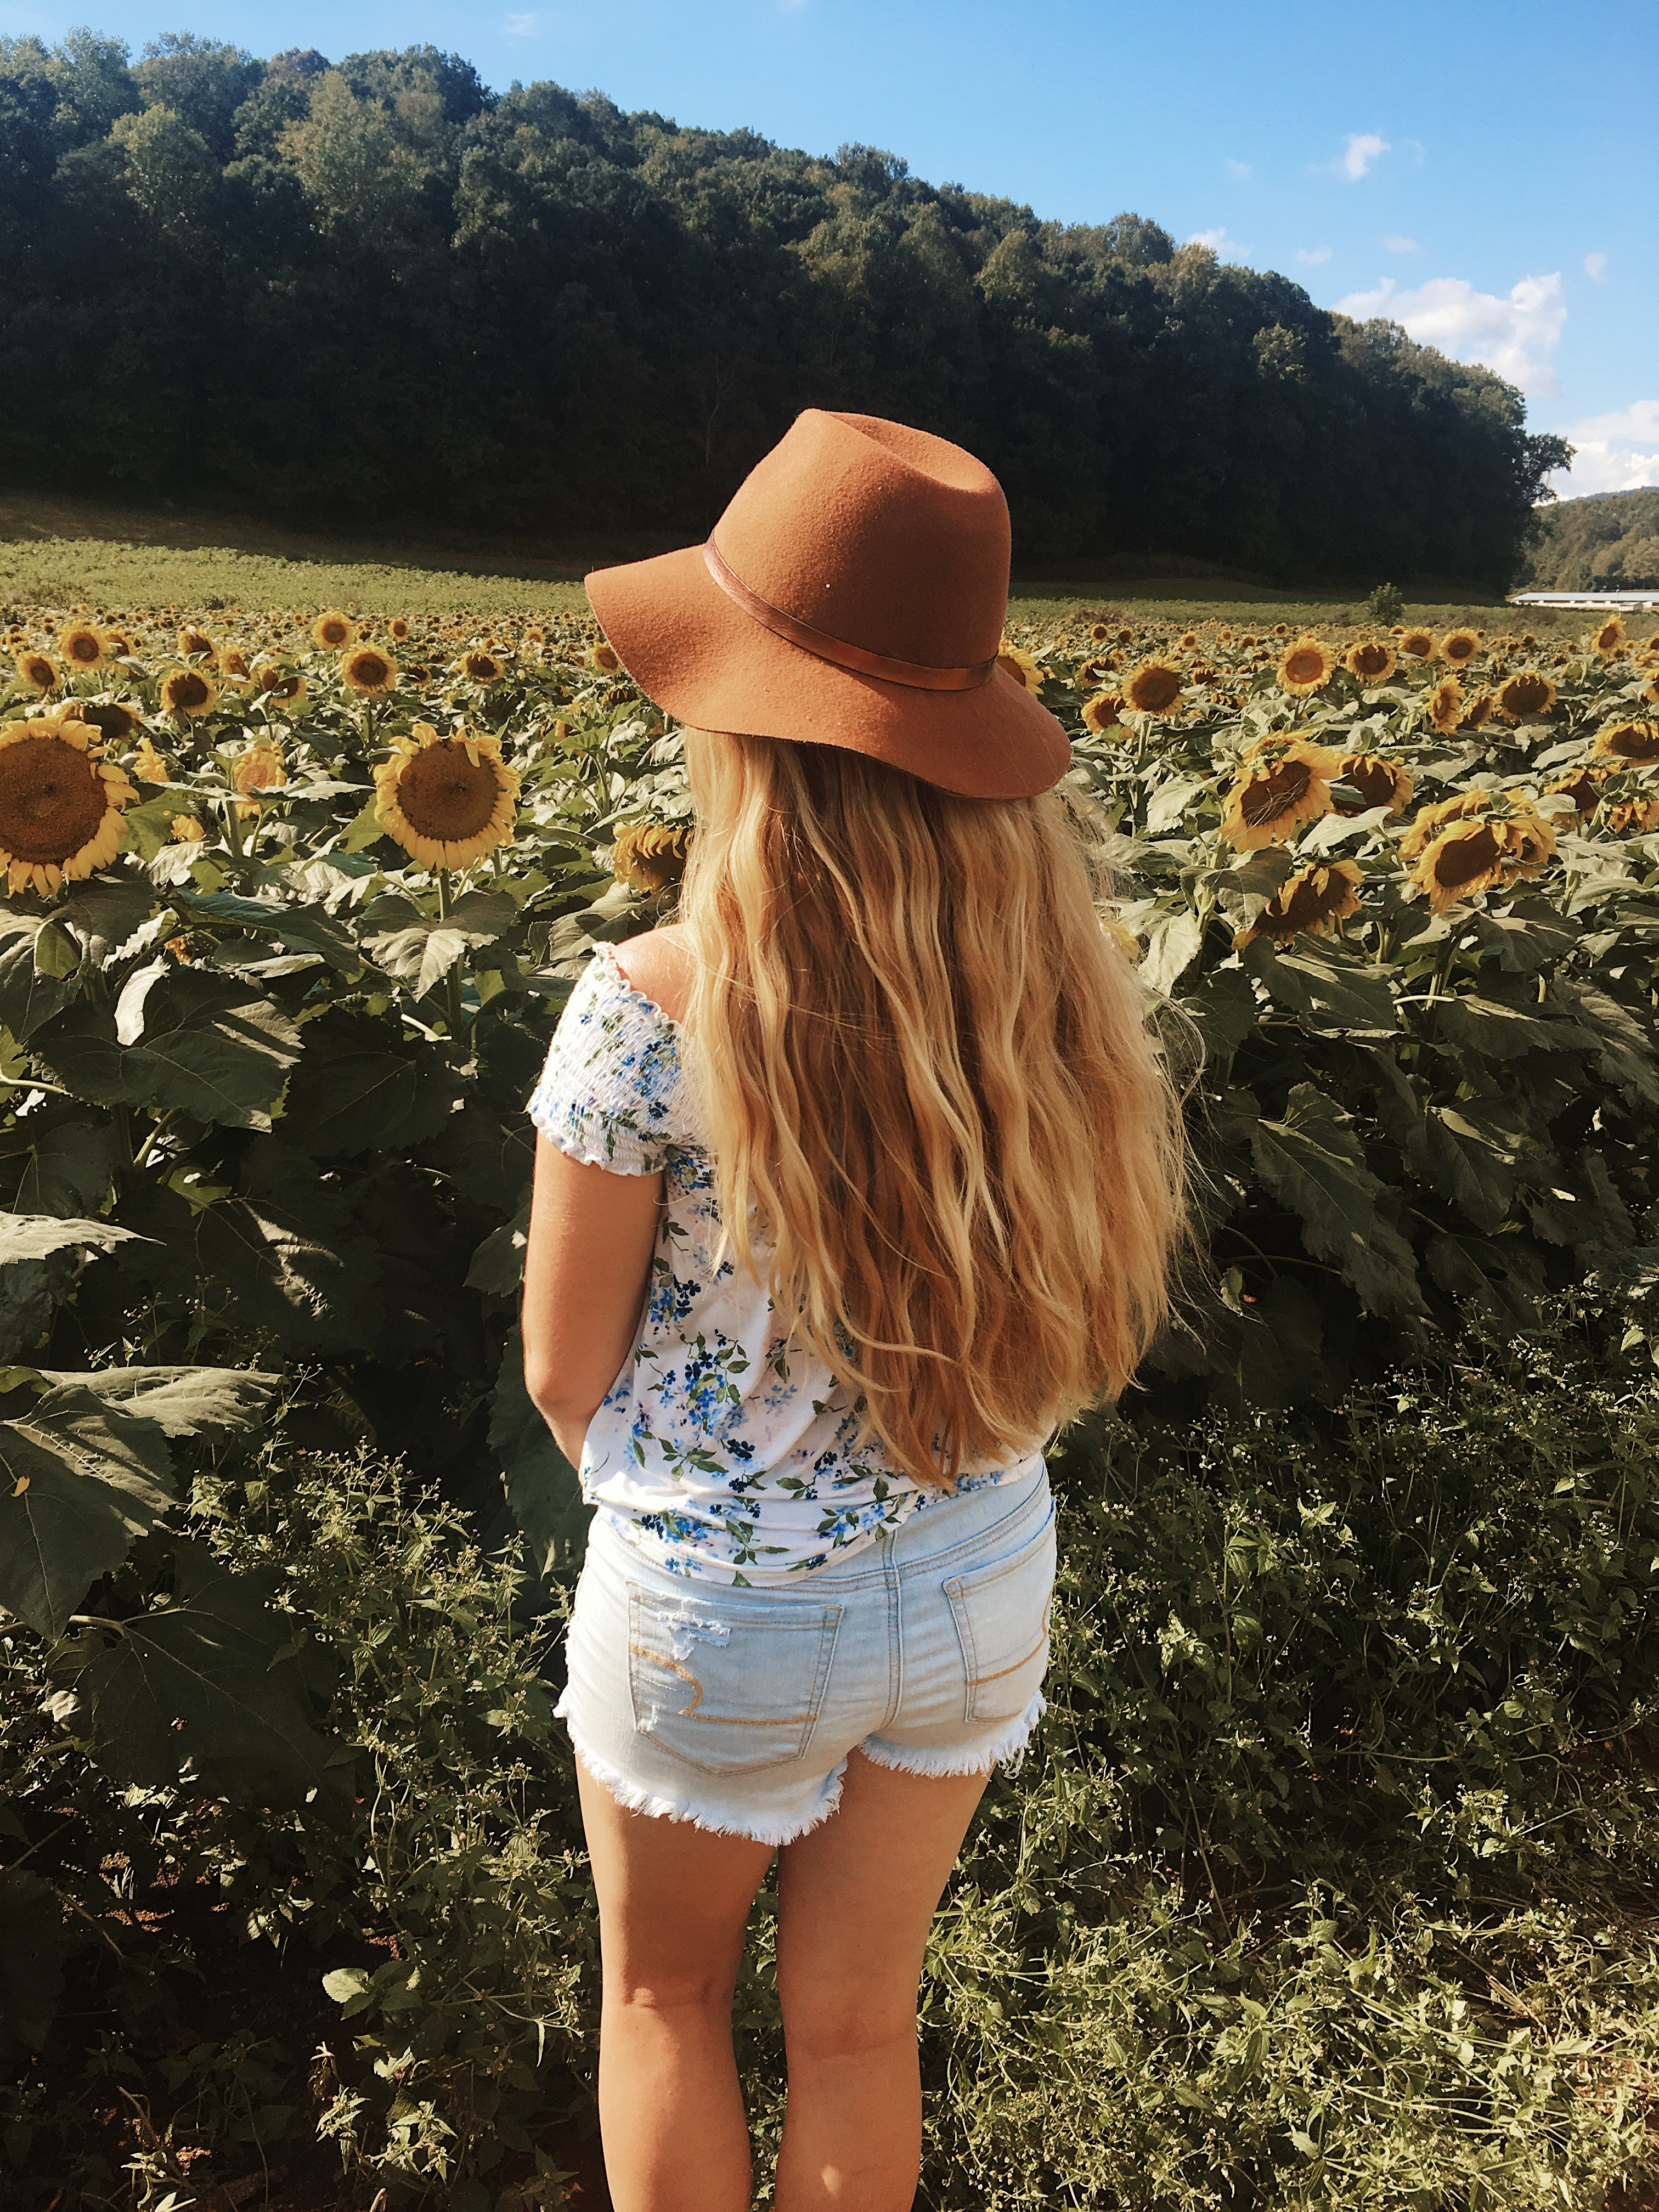 girl with long blonde wavy hair standing in a field of sunflowers